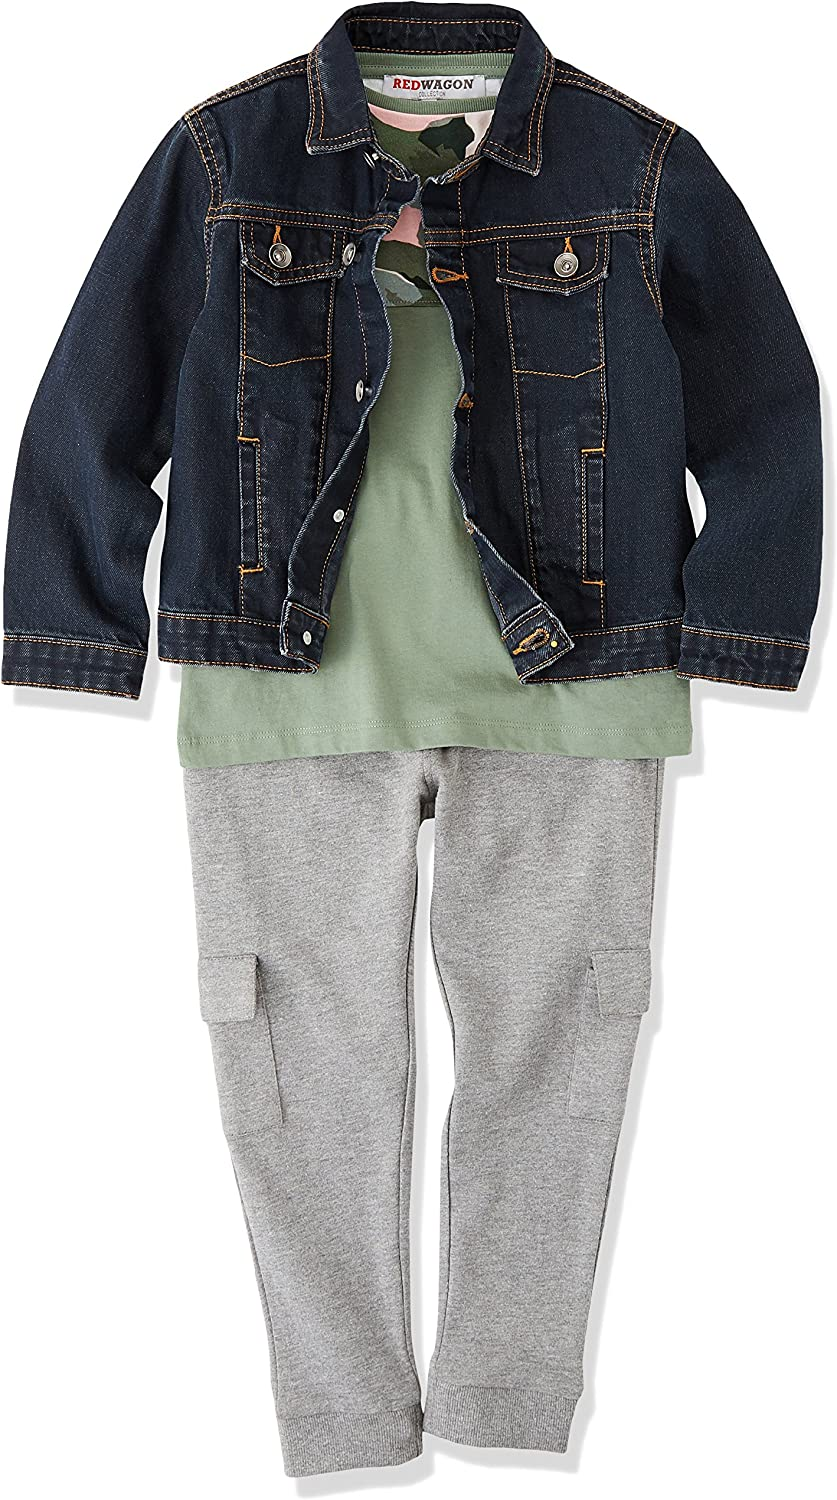 Marke RED WAGON Jungen Jeansjacke Basic